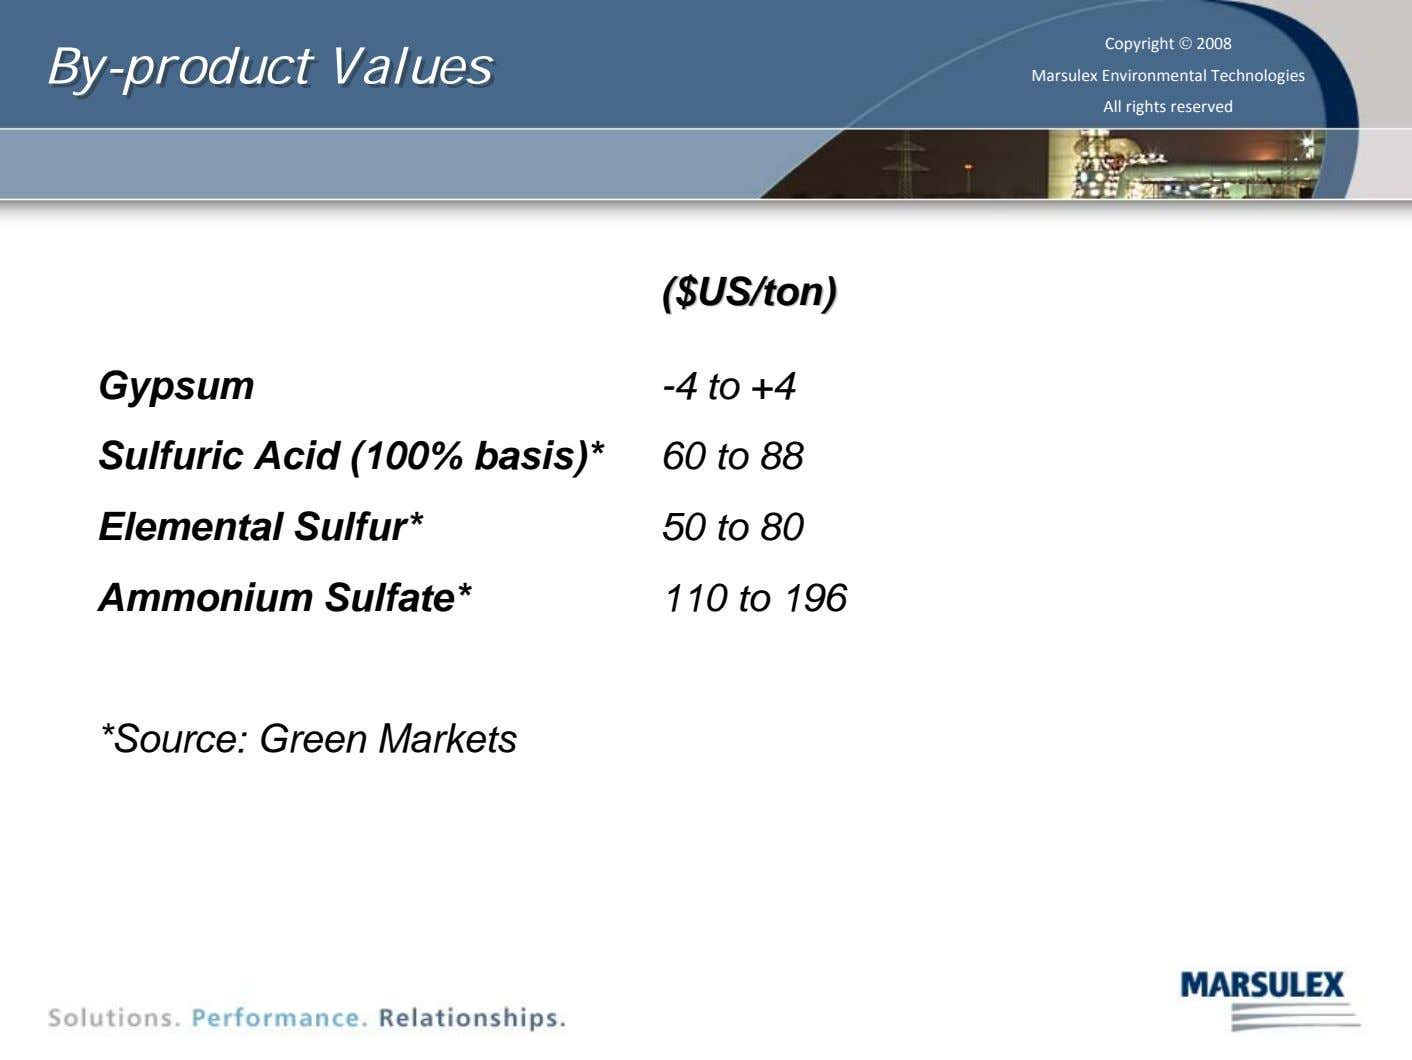 By-product By-product Values Values Copyright © 2008 Marsulex Environmental Technologies All rights reserved ($US/ton) ($US/ton) Gypsum